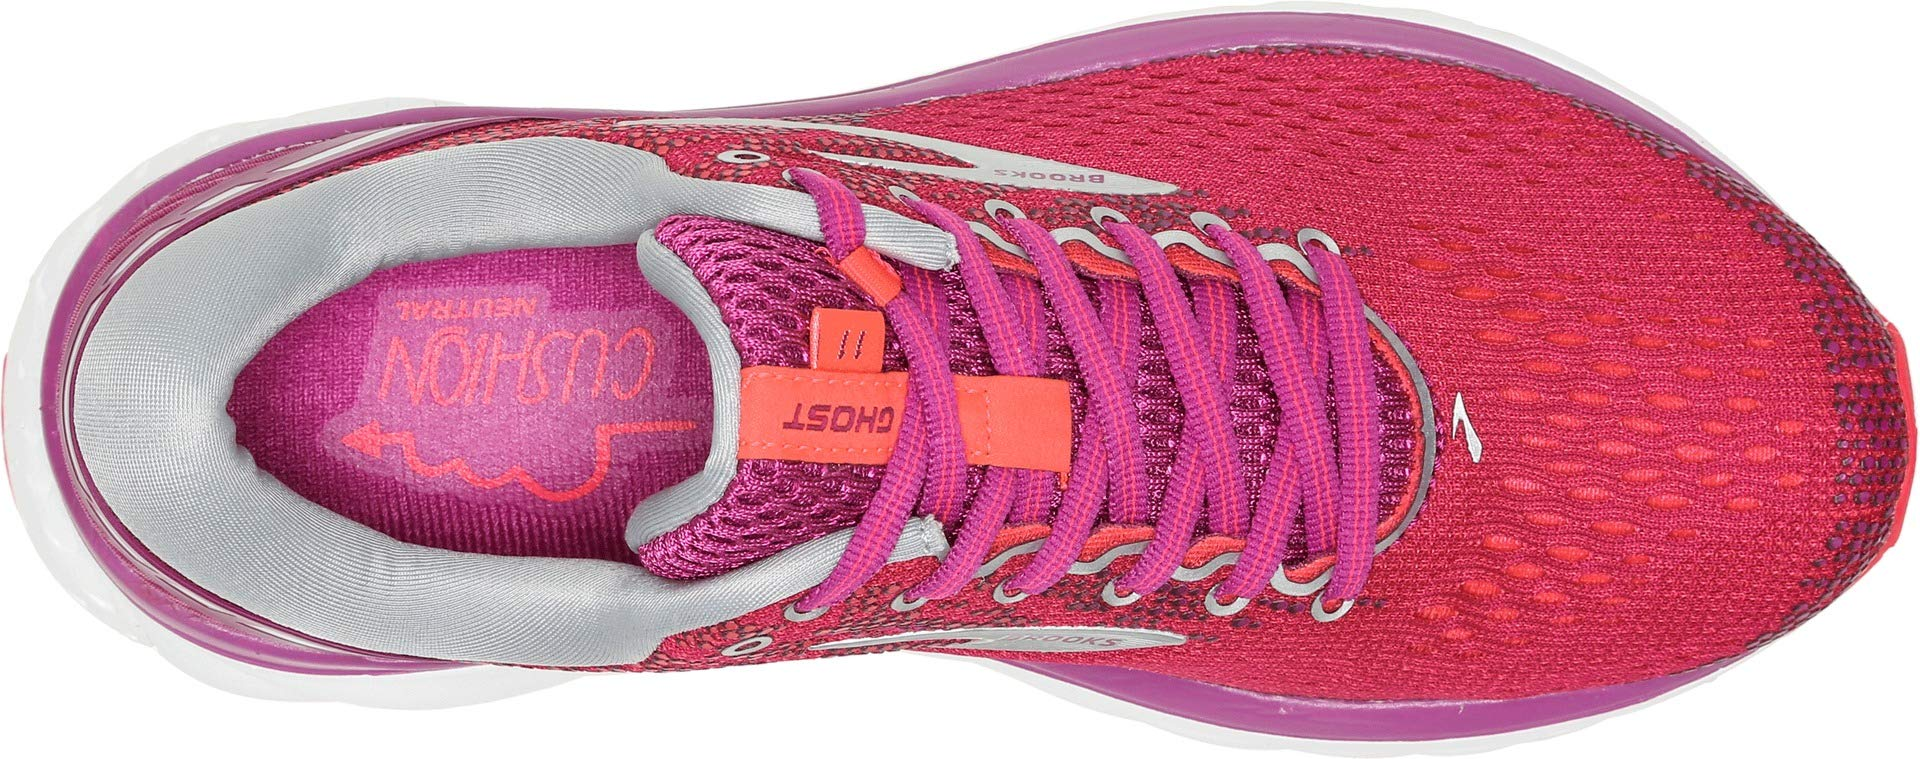 Brooks Women's Ghost 11 Aster/Diva Pink/Silver 5.5 B US by Brooks (Image #1)